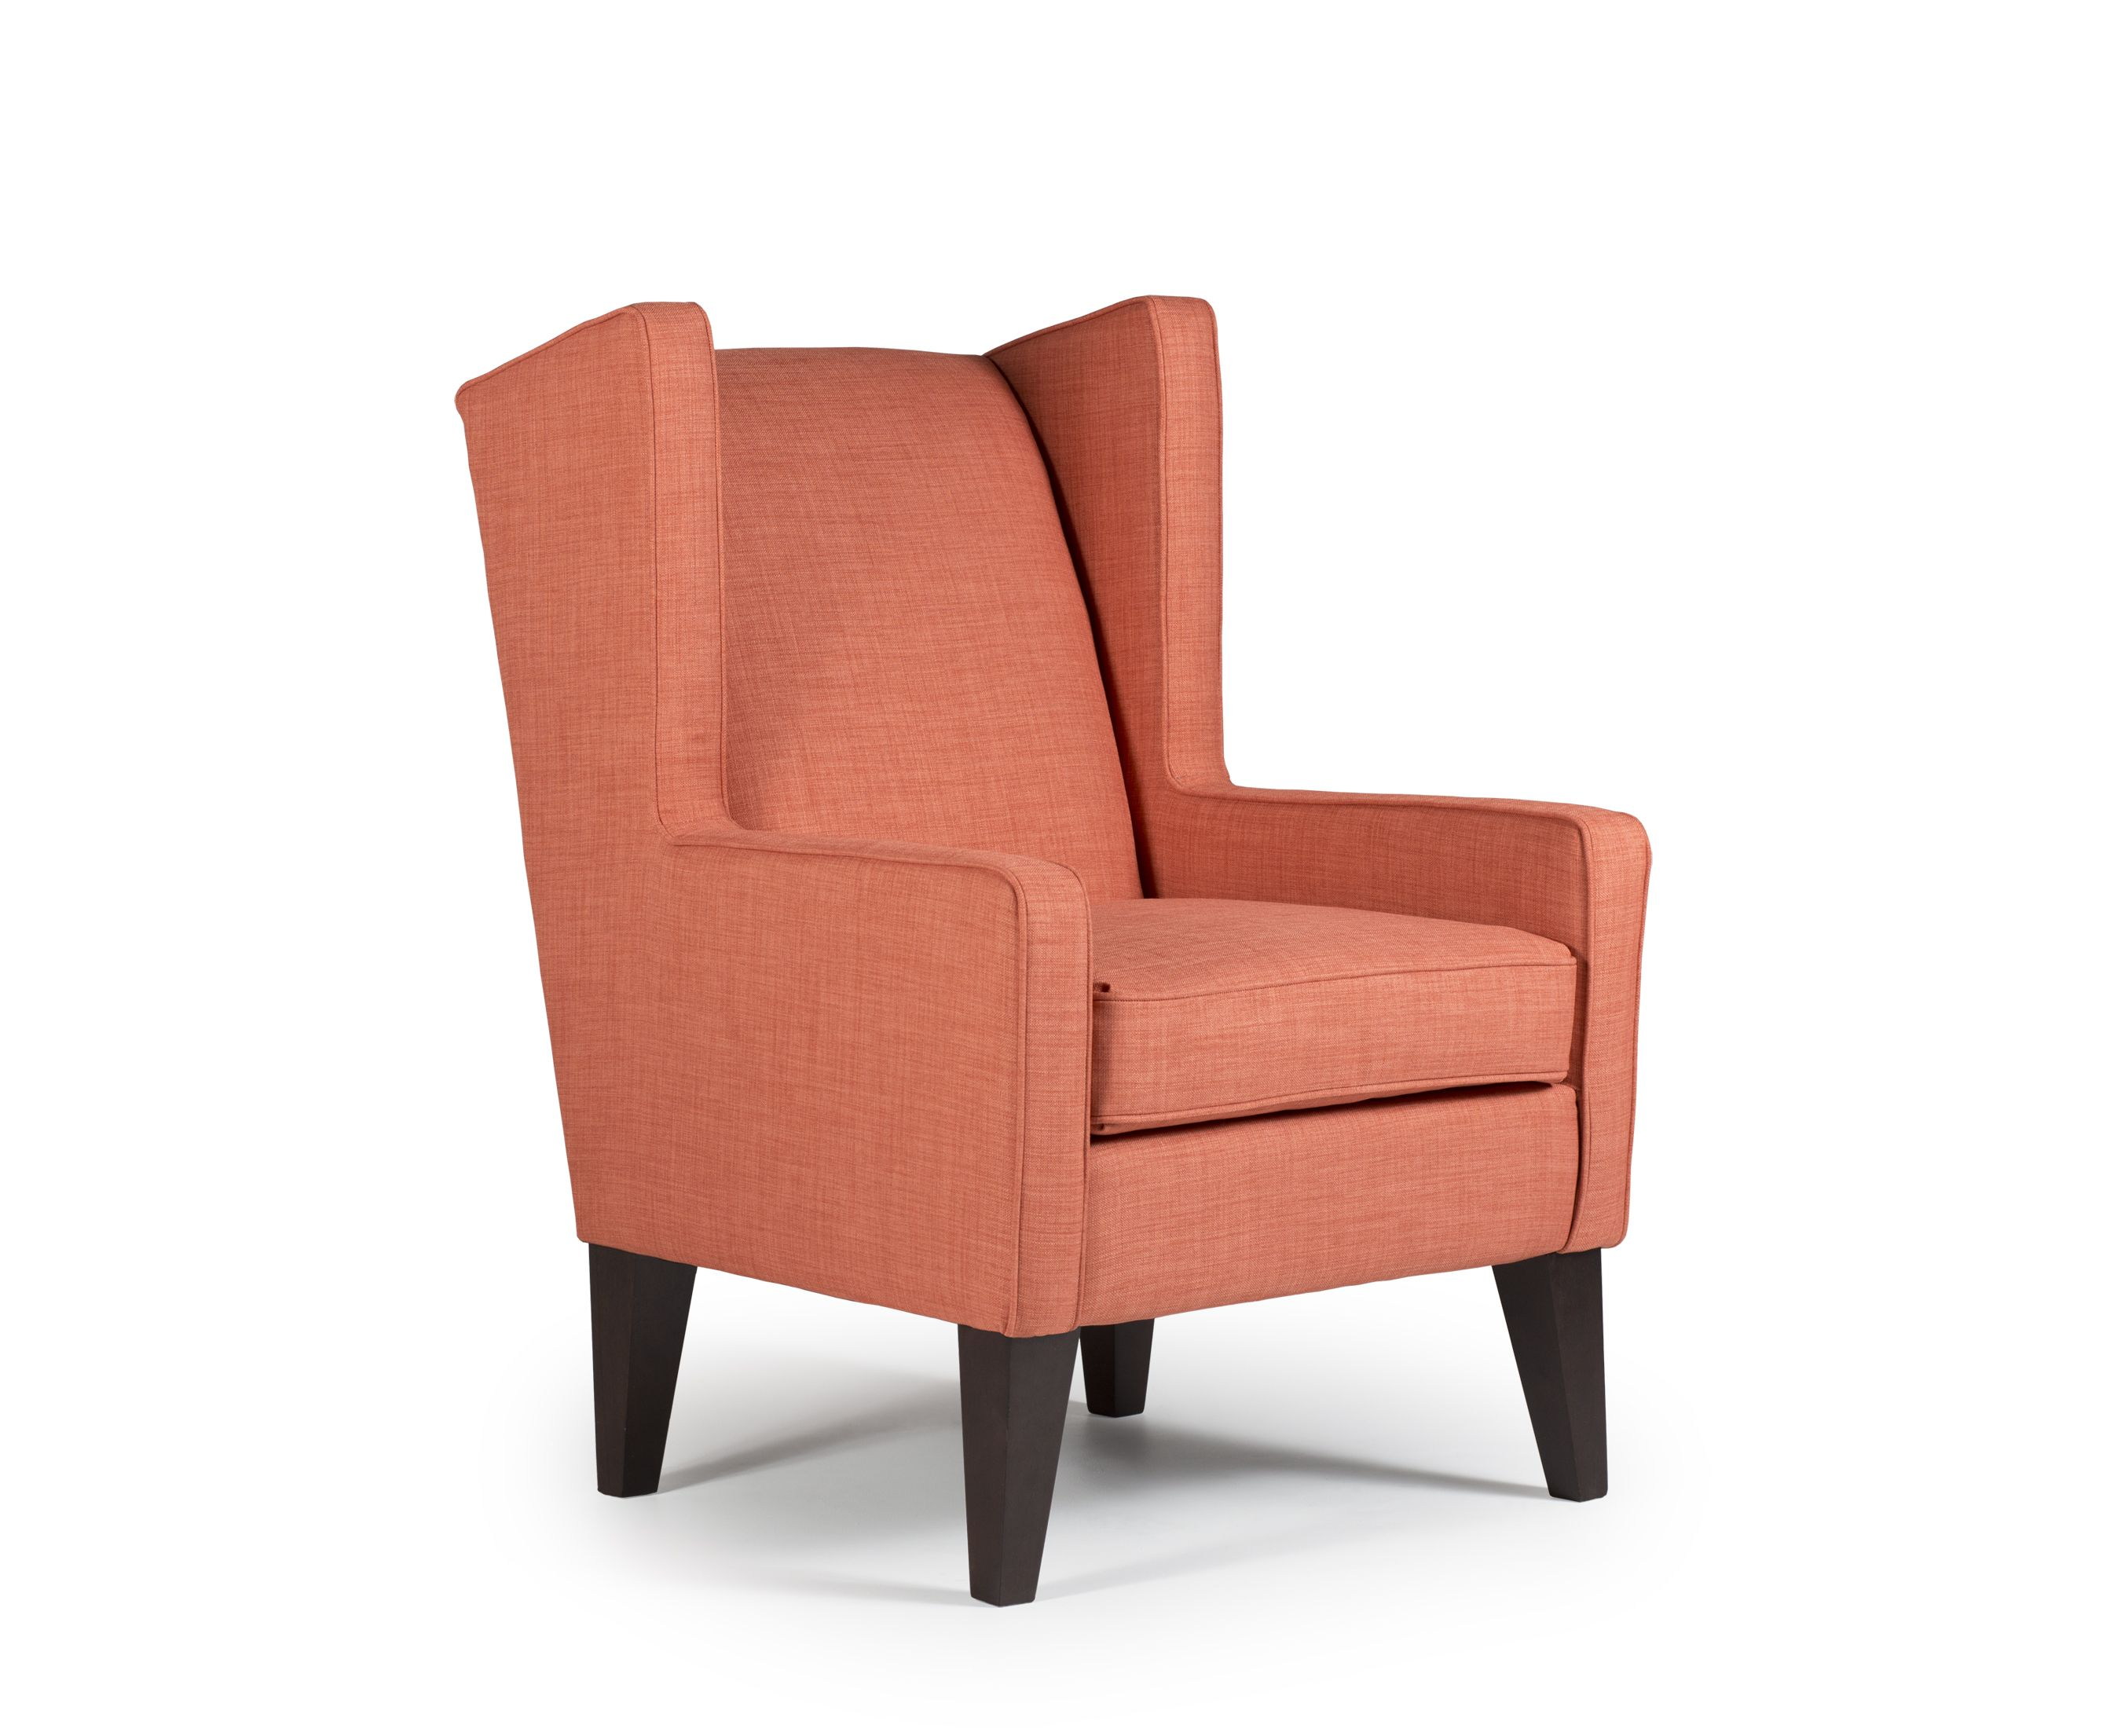 the karla wingback chair made it s debut at the 2013 fall high point rh in pinterest com